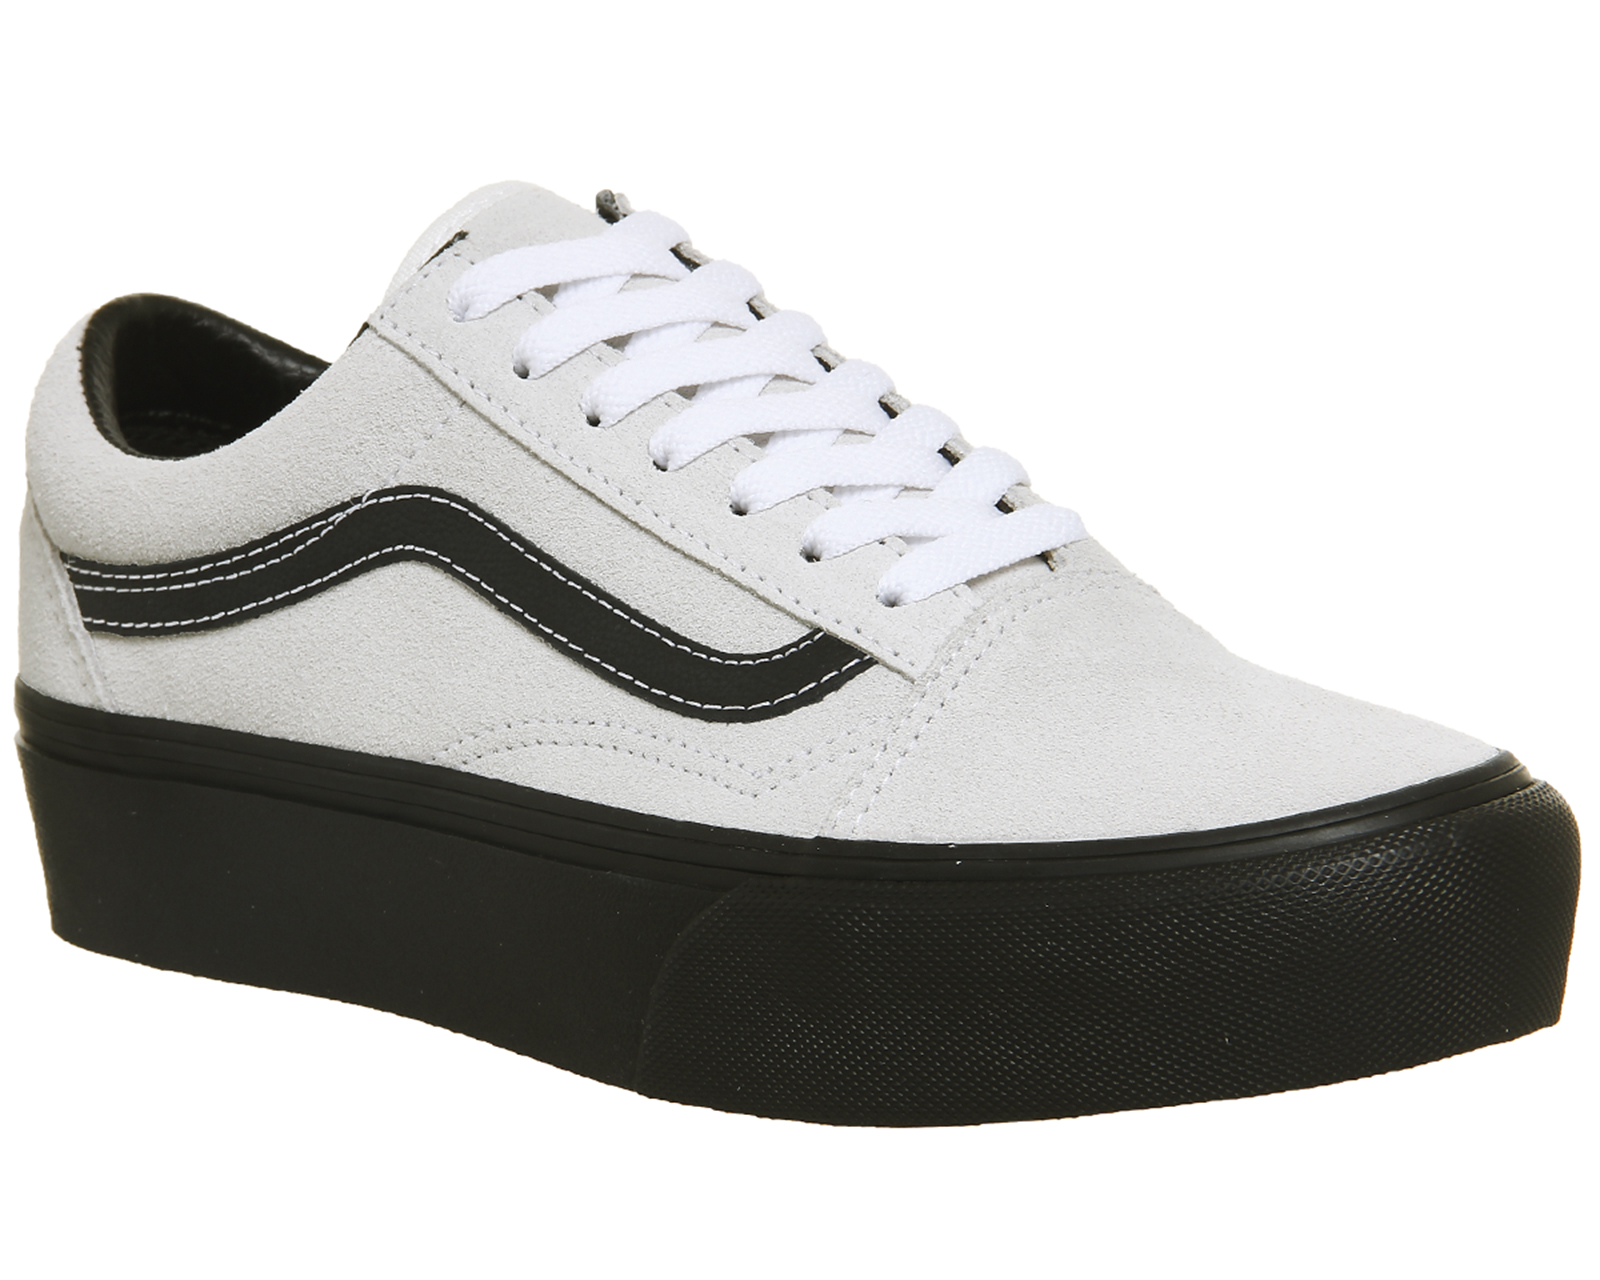 20fbc6aa356 Sentinel Womens Vans Old Skool Platforms BLANC BLACK Trainers Shoes